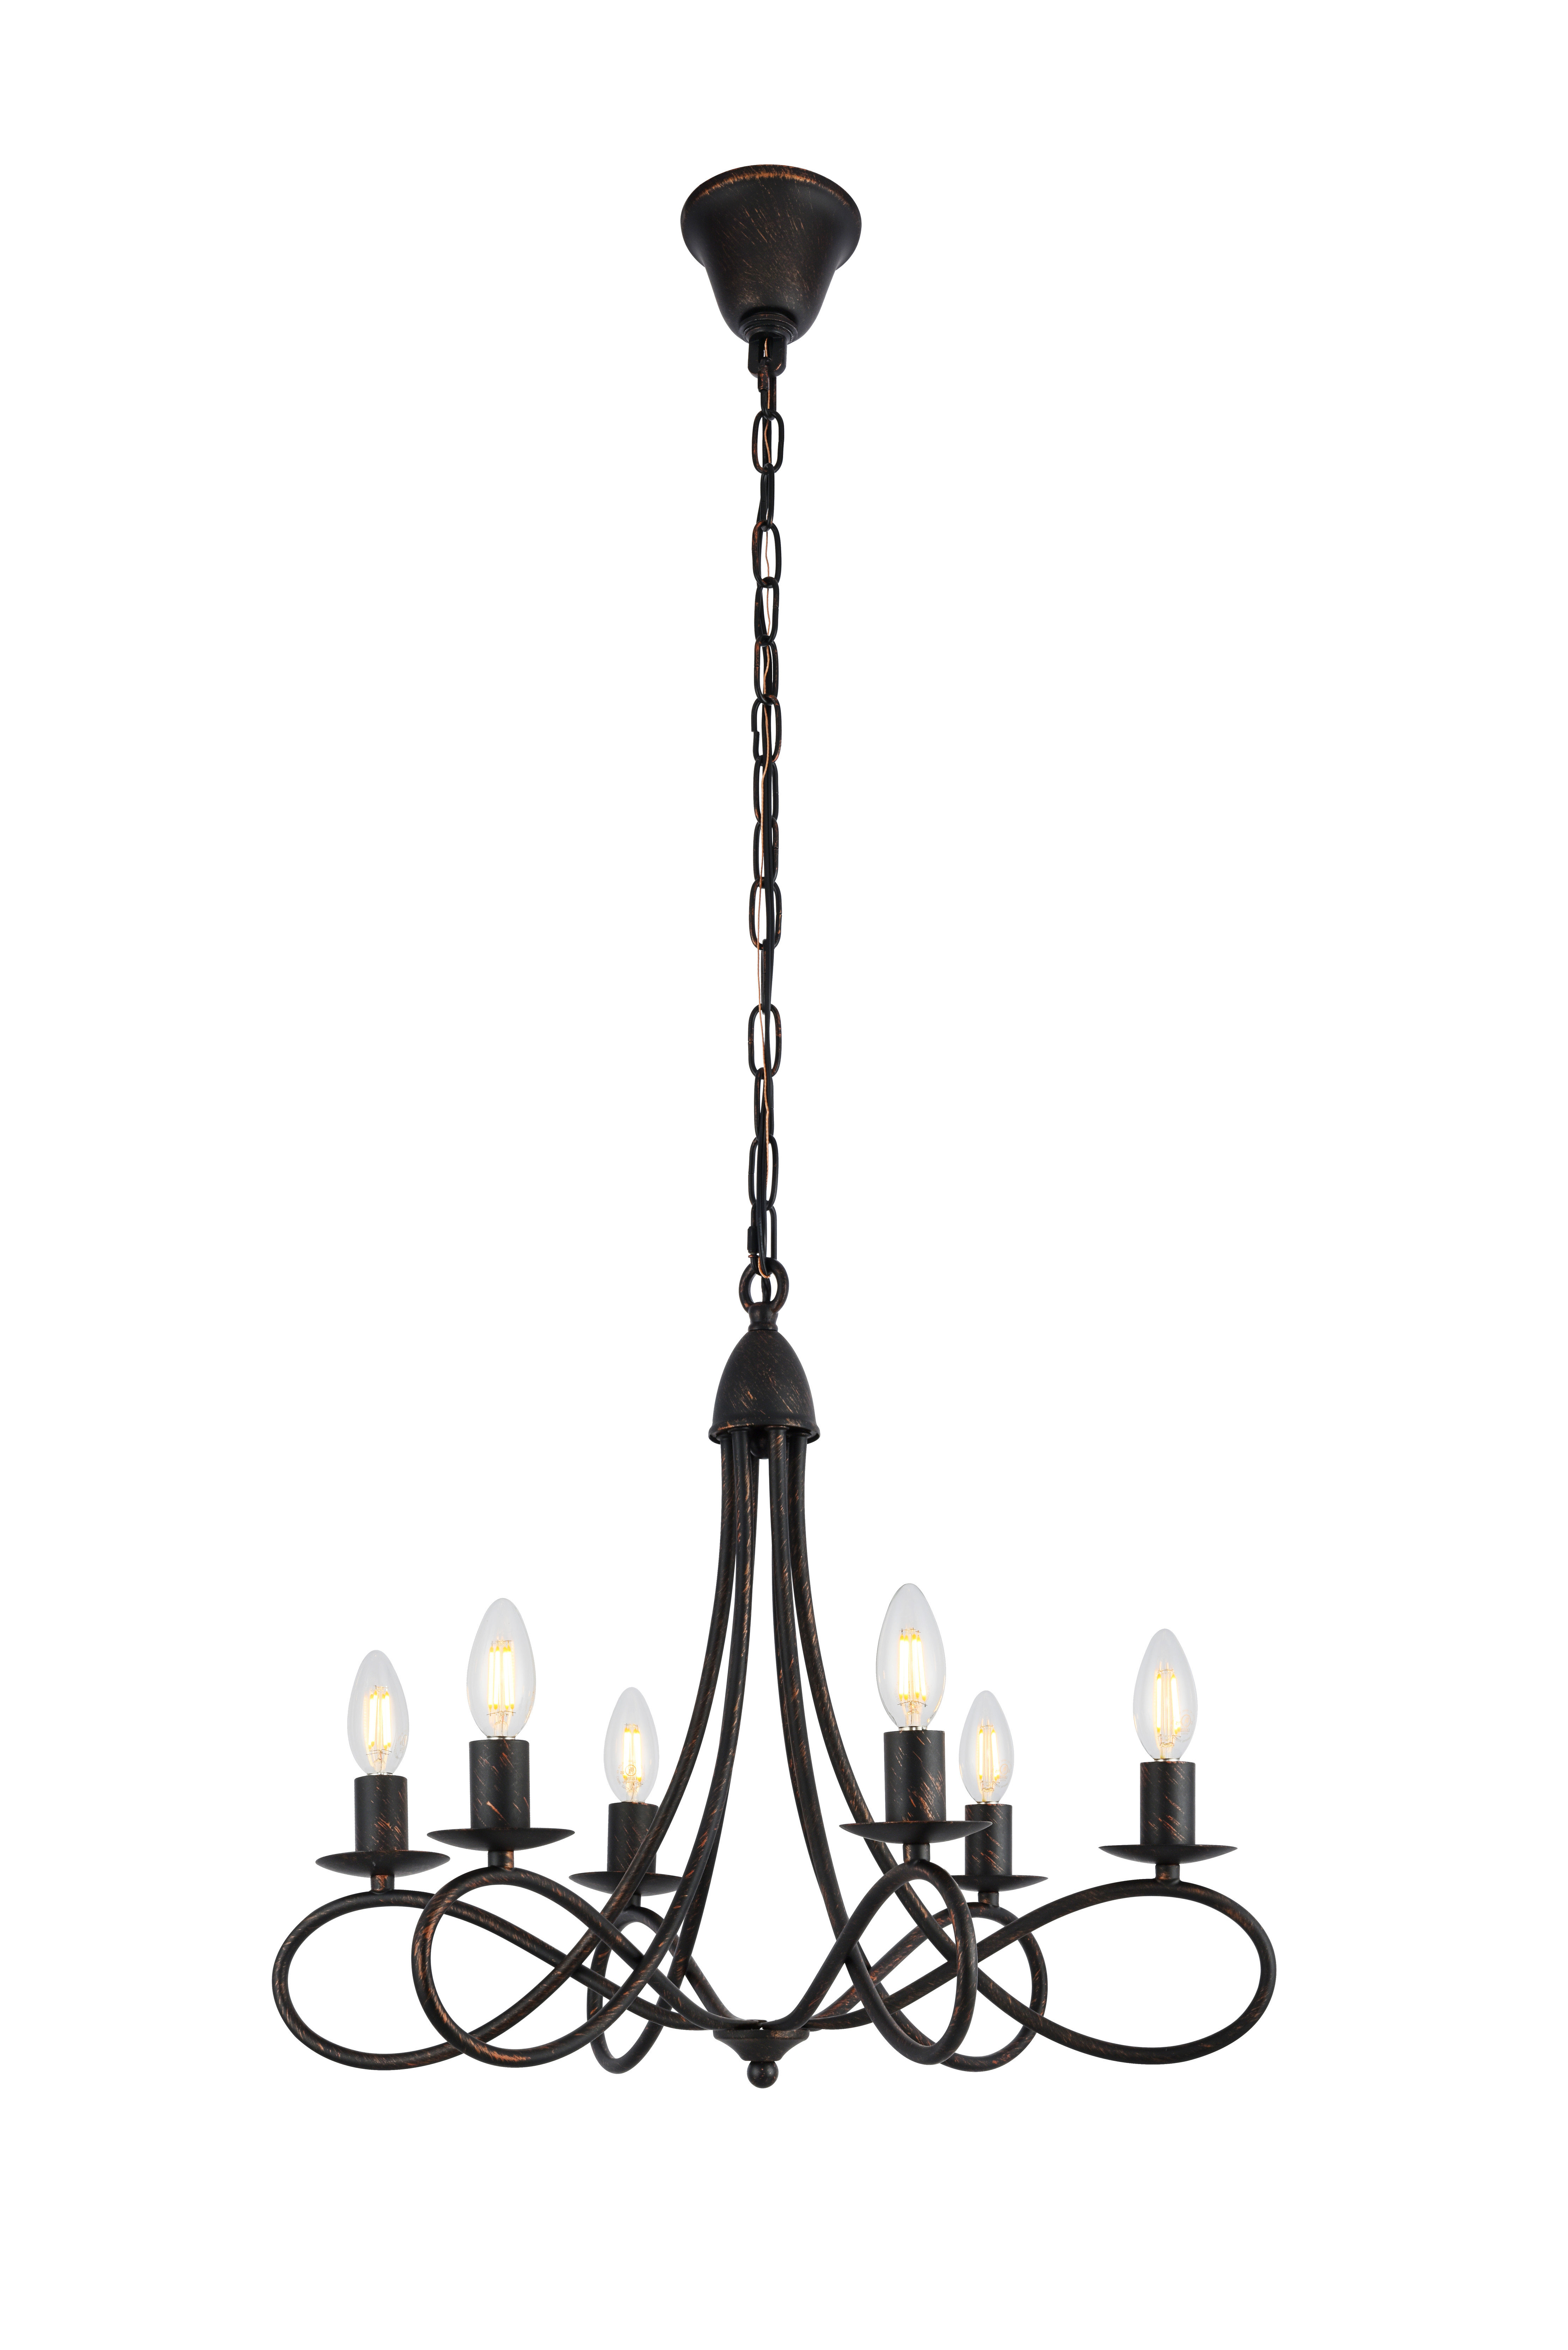 Darby Home Co Diaz 6 Light Candle Style Chandelier For Best And Newest Sherri 6 Light Chandeliers (View 11 of 25)